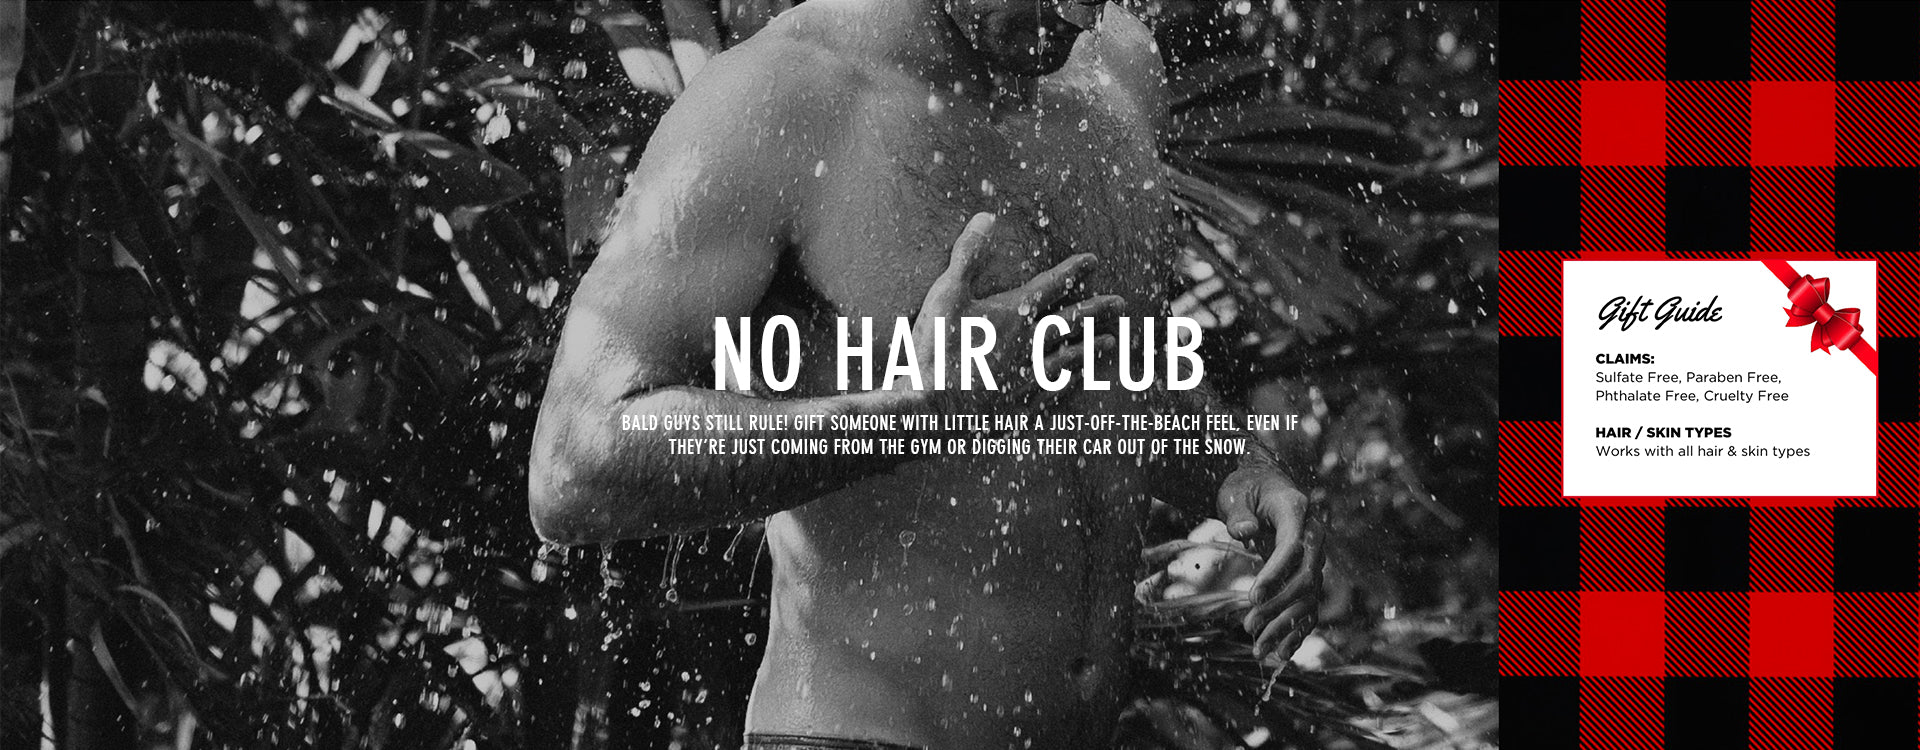 NO HAIR CLUB - BALD GUYS STILL RULE! GIFT SOMEONE WITH LITTLE HAIR A JUST-OFF-THE-BEACH FEEL, EVEN IF THEY'RE JUST COMING FROM THE GYM OR DIGGING THEIR CAR OUT OF THE SNOW.